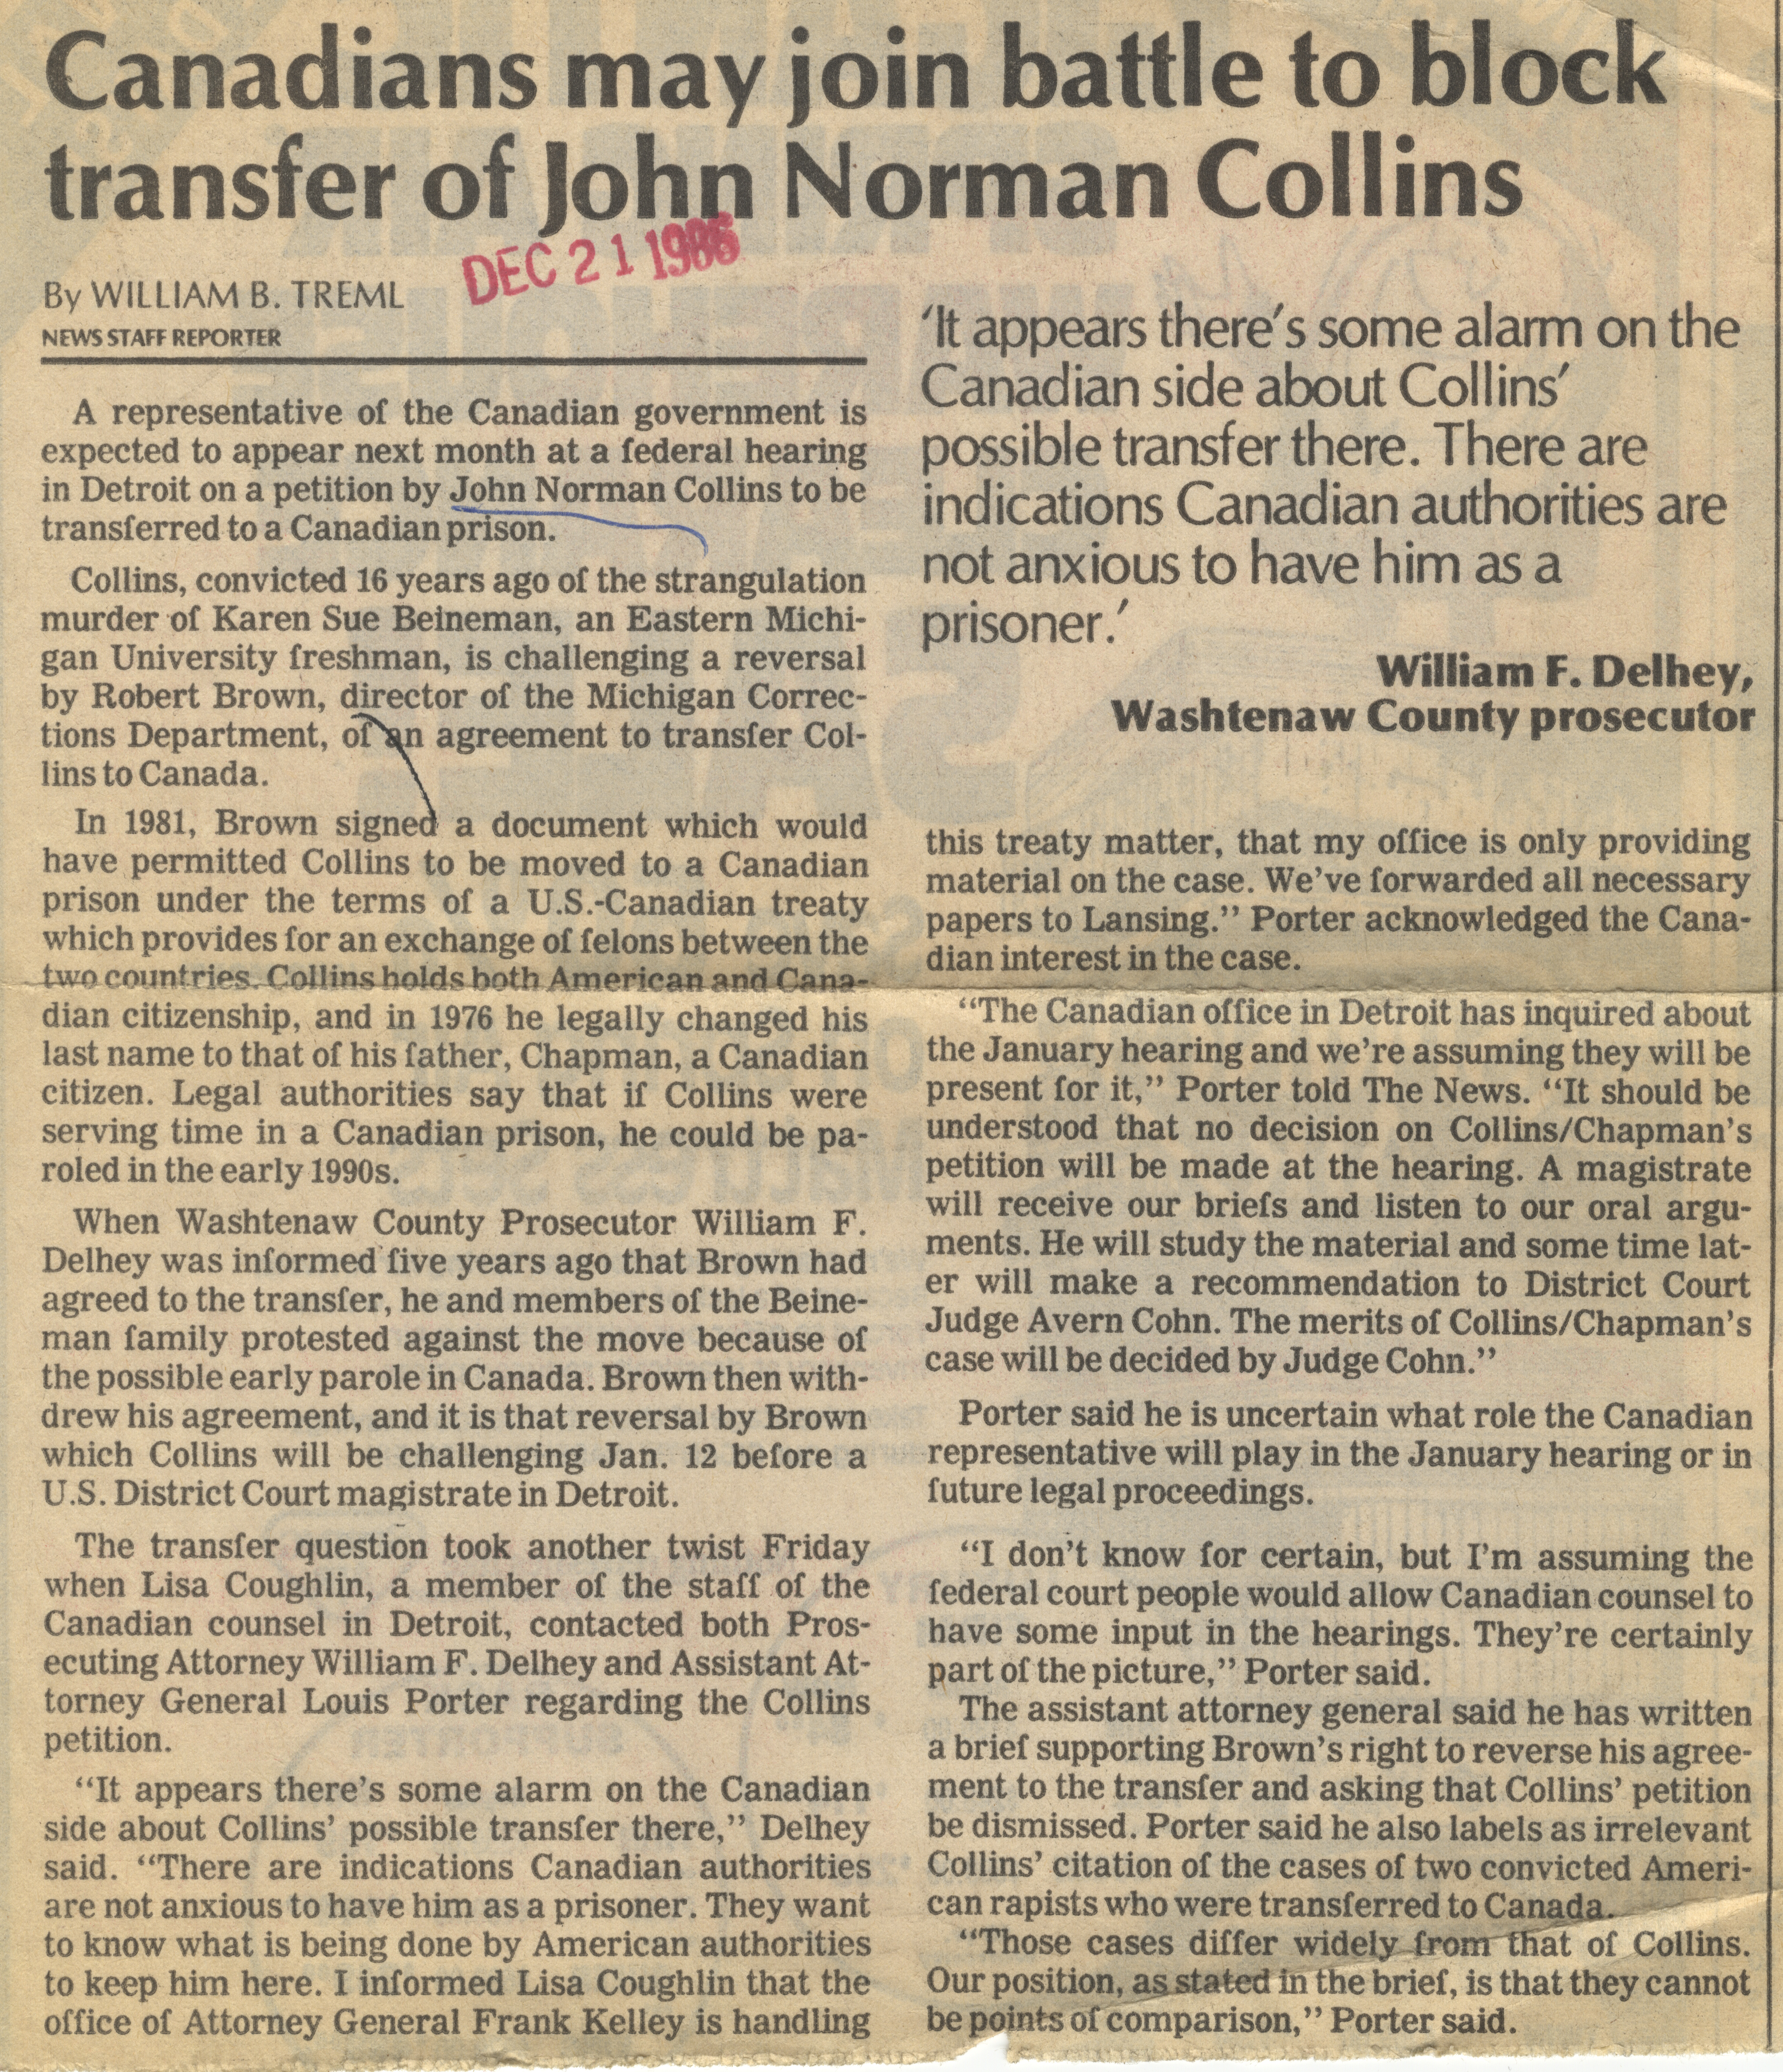 Canadians may join battle to block transfer of John Norman Collins image